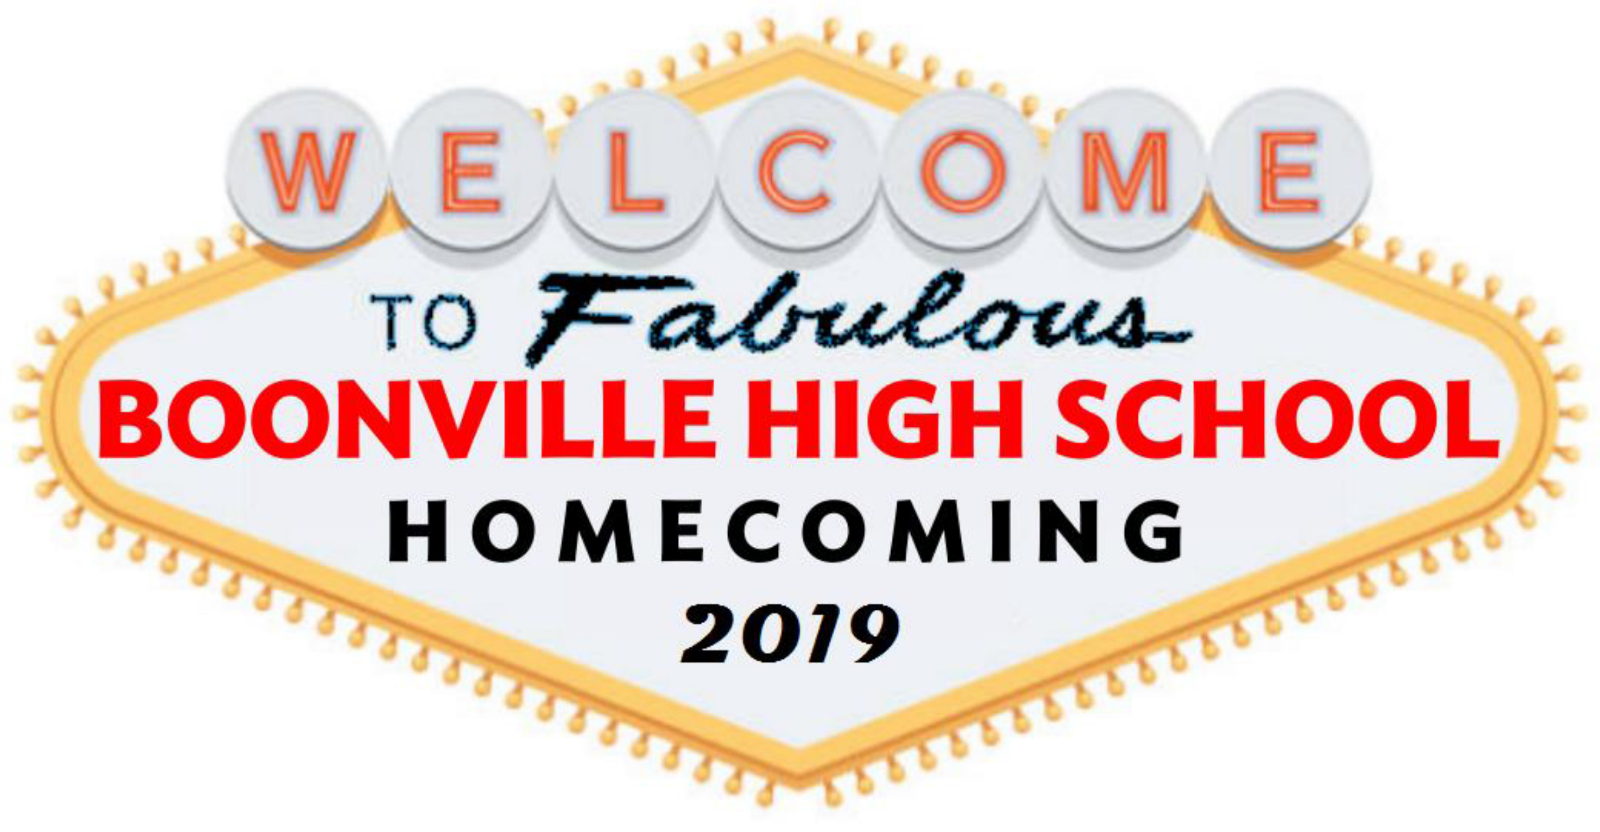 Taste of Pride, Homecoming and Hall of Fame Information